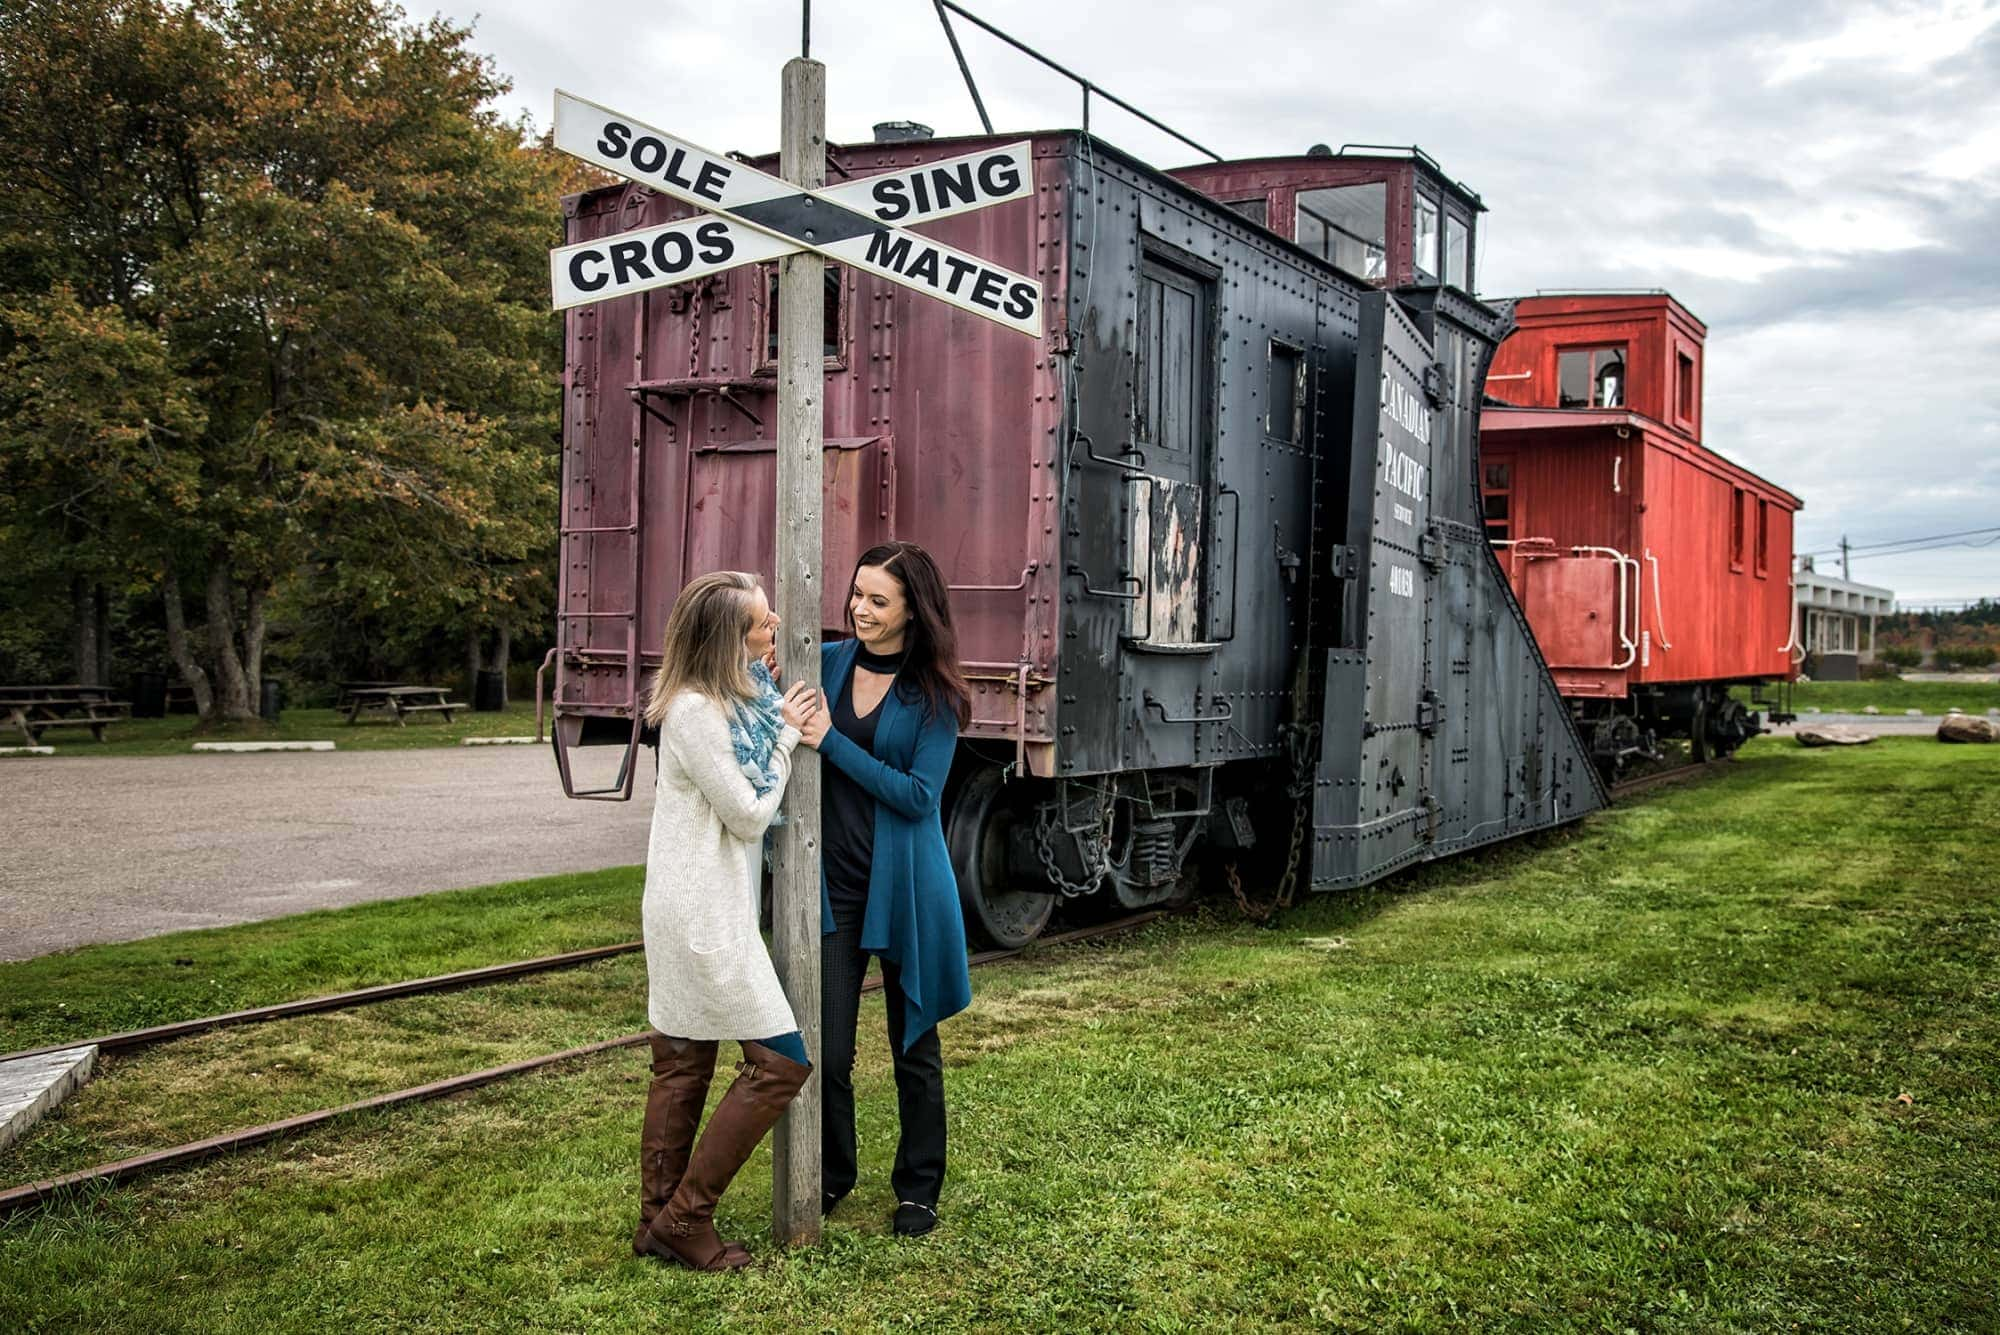 An LGBT lesbian couple stare at each other during engagement photos at the Musquodoboit Train Museum in Nova Scotia.